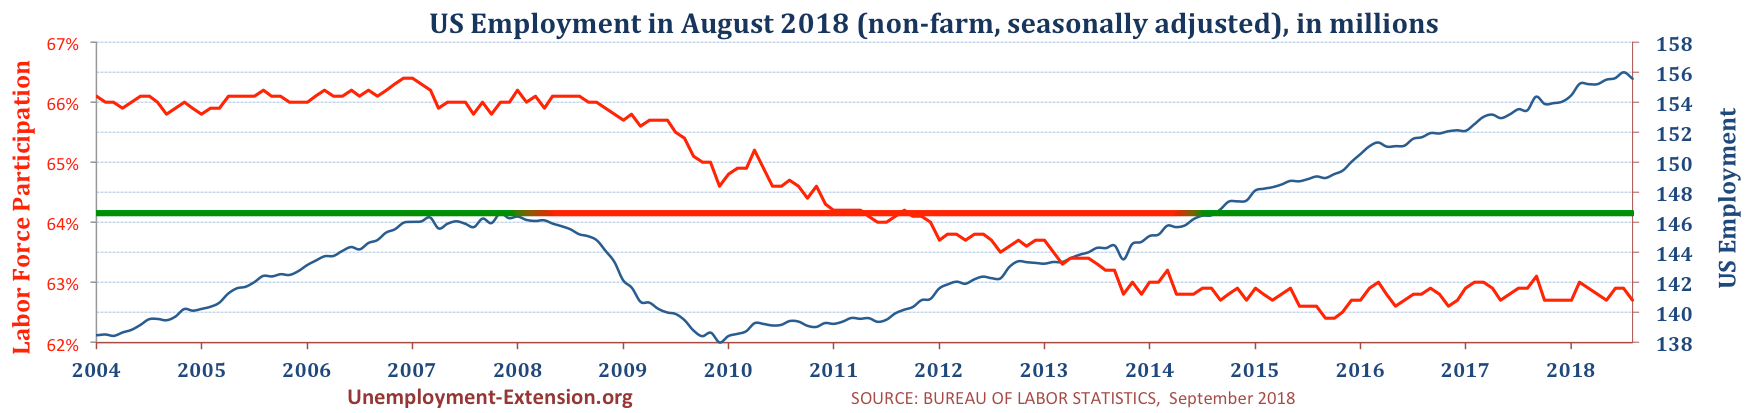 Total US Employment (non-farm, seasonally adjusted) in August of 2018. US economy has lost approximately 10 million jobs in comparison to pre-resession level.